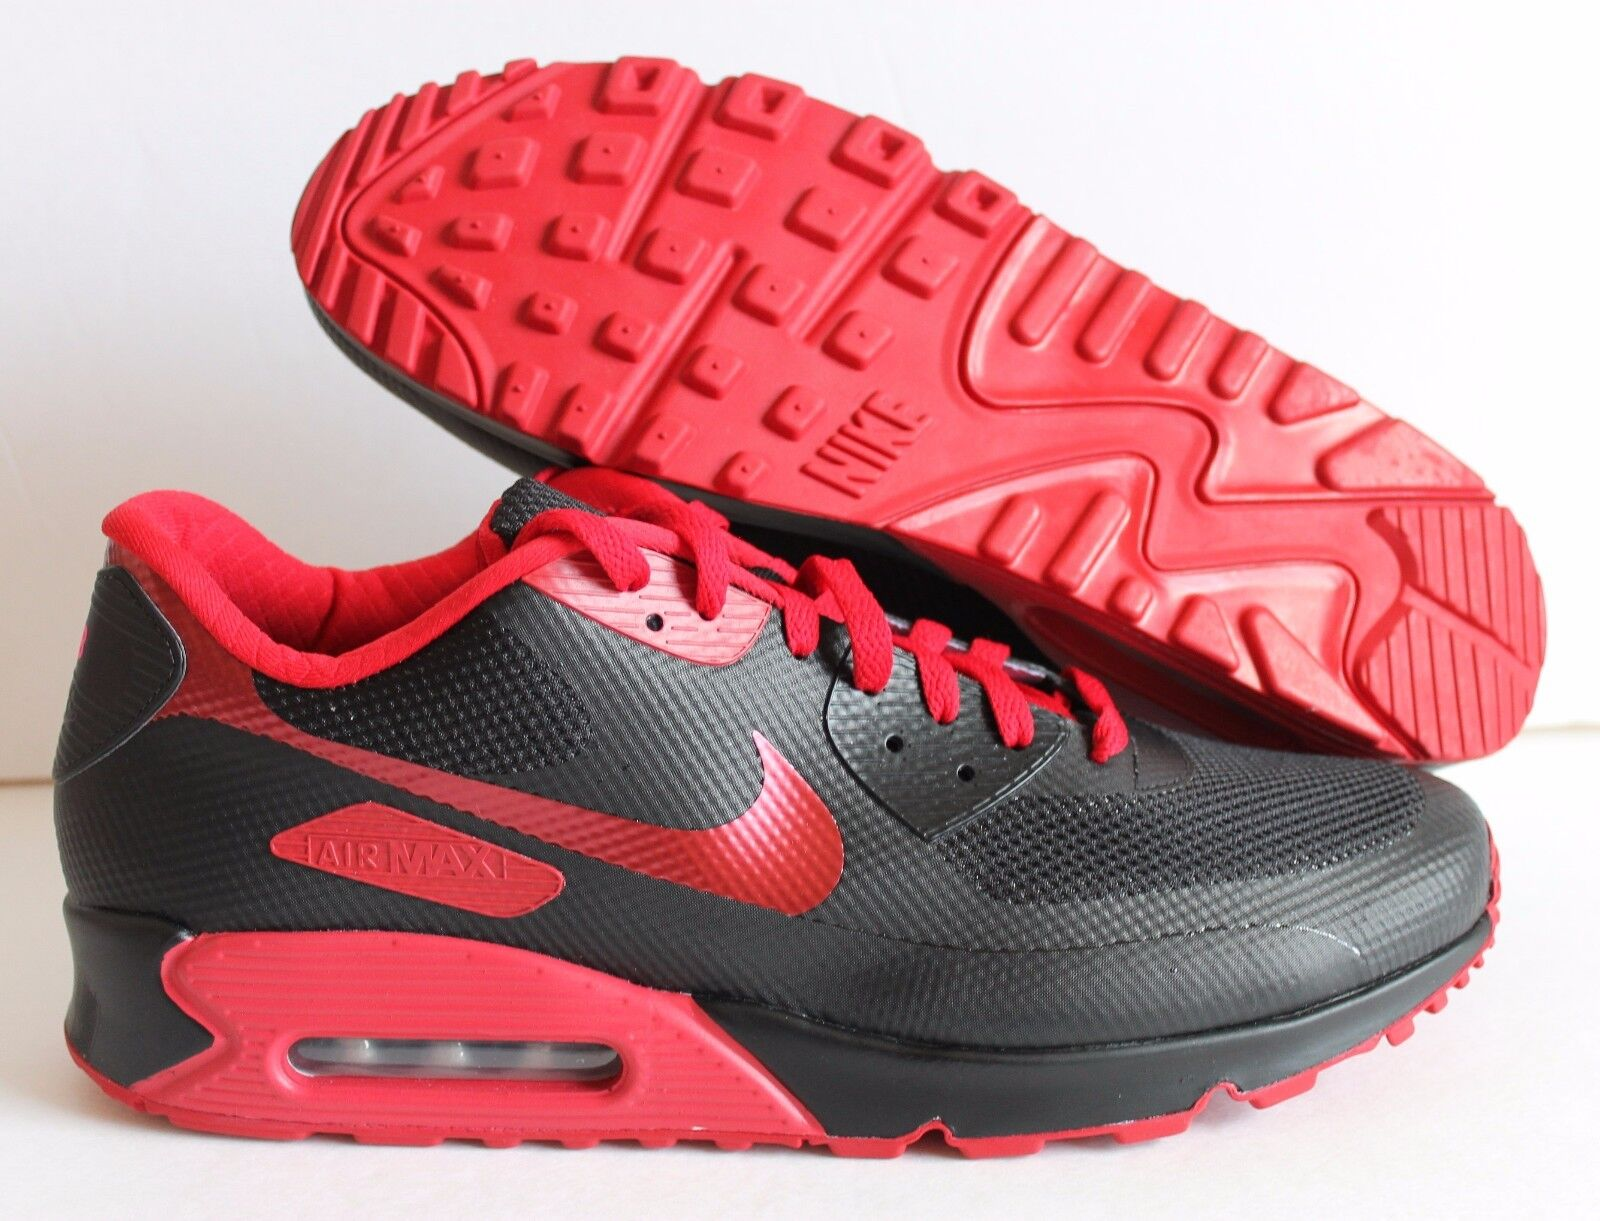 Nike Hombres AIR MAX 90 Hyperfuse Hyperfuse 90 Premium ID Negro/Rojo [653603-992] 8c737e